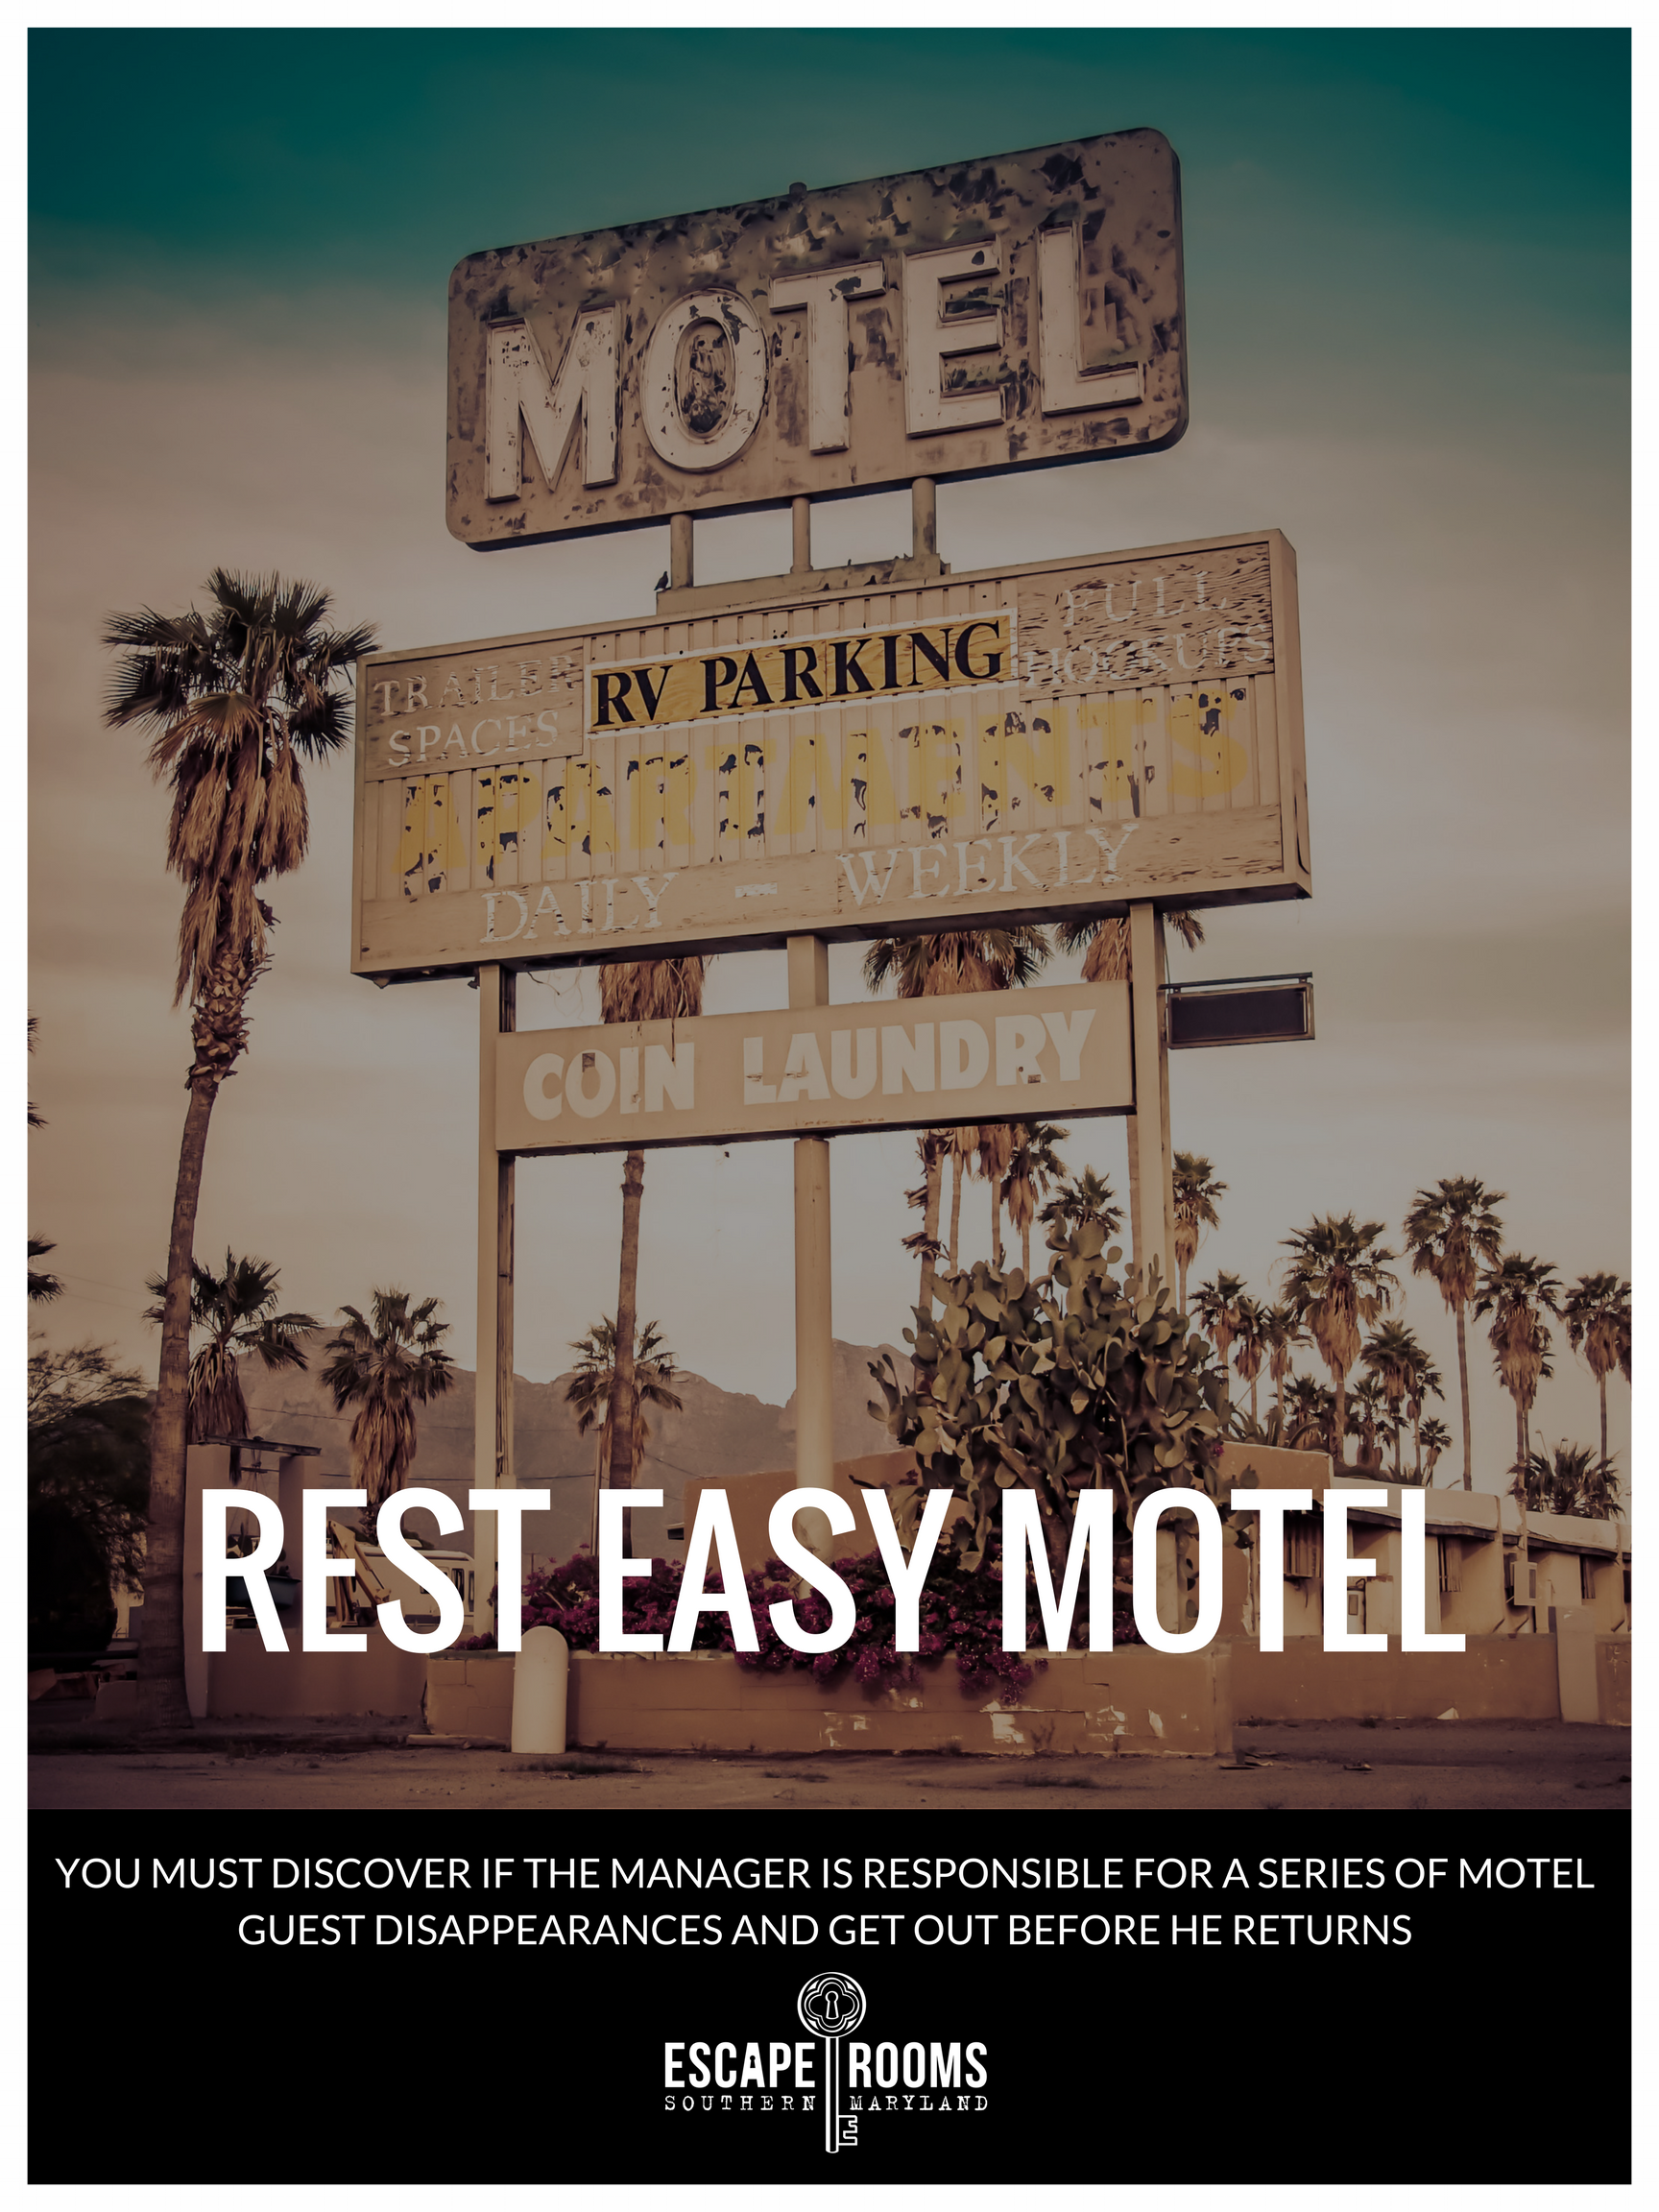 Rest Easy Motel movie poster featuring rusty old motel sign over run down motel.